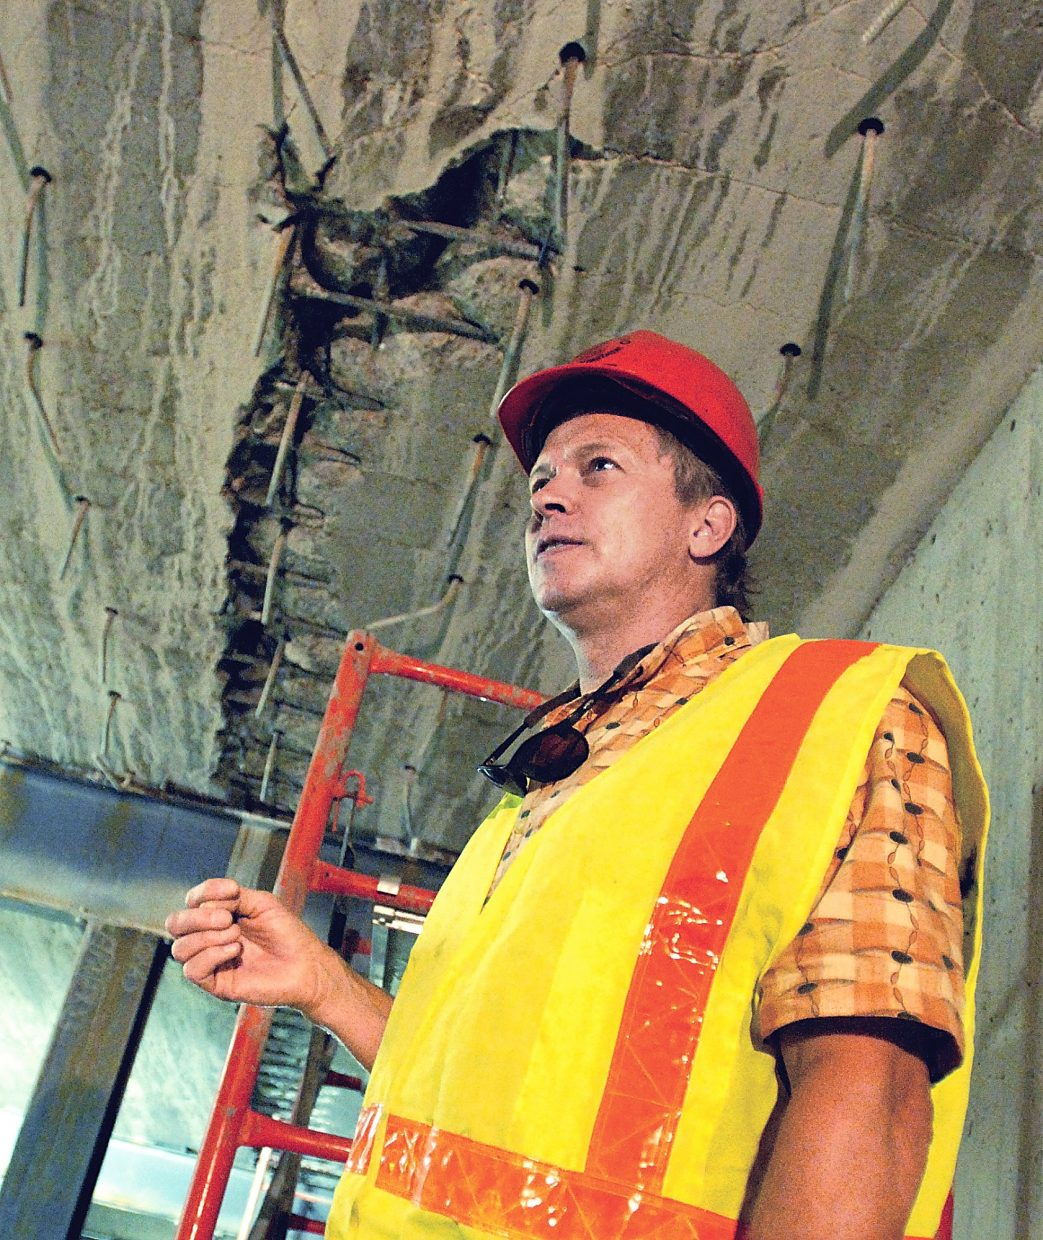 Joe Elsen explains how a crack formed in the ceiling of one of the tunnels in Glenwood Canyon a few years ago.